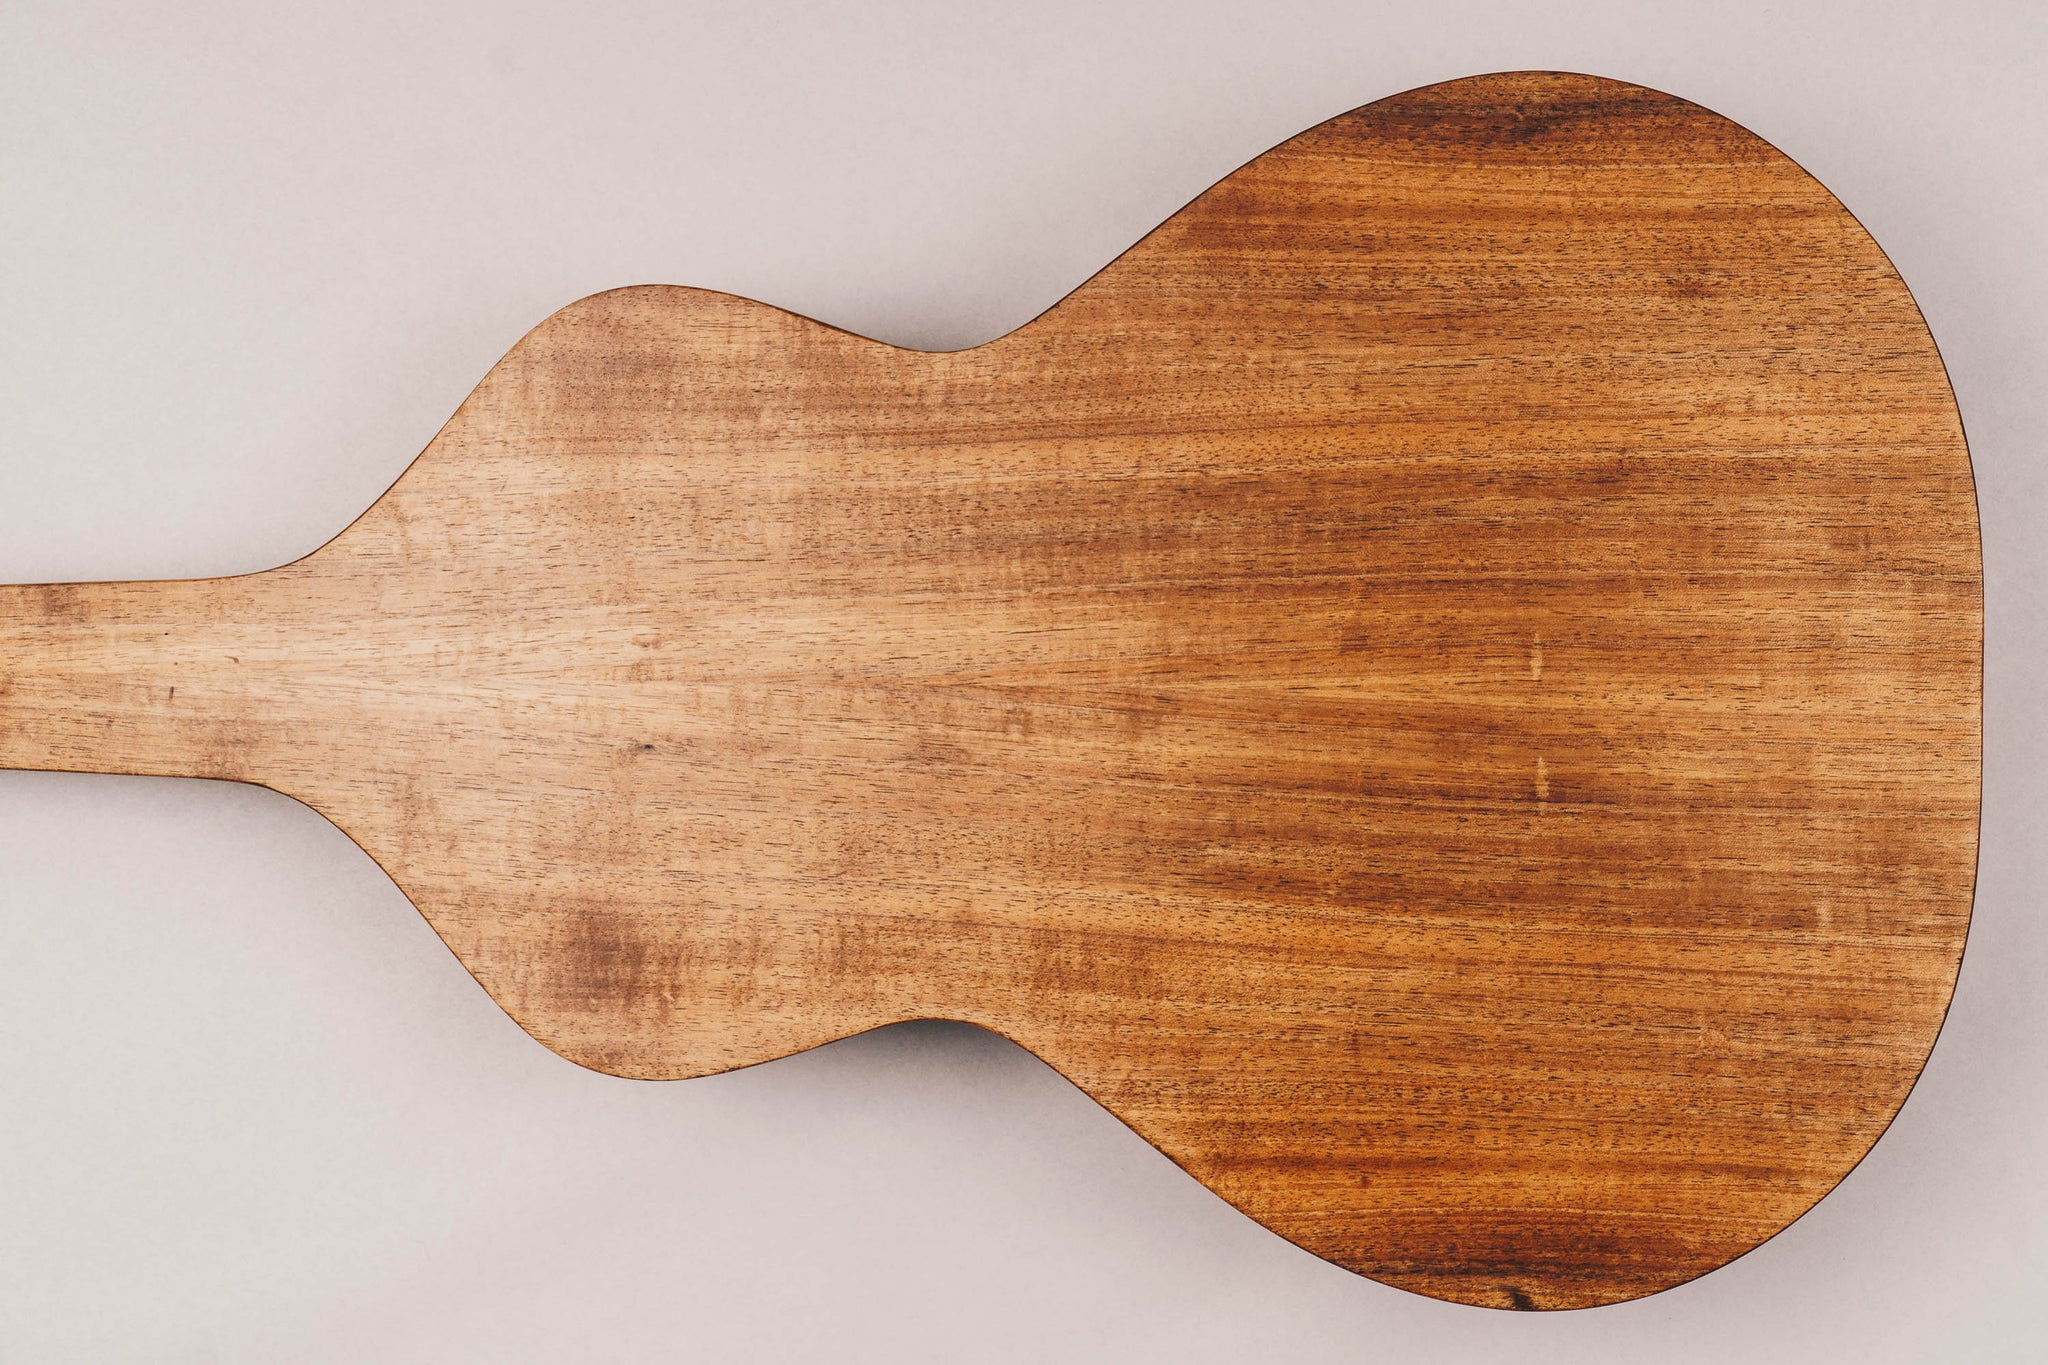 Weissenborn - Style 3 - Figured Tasmanian Blackwood